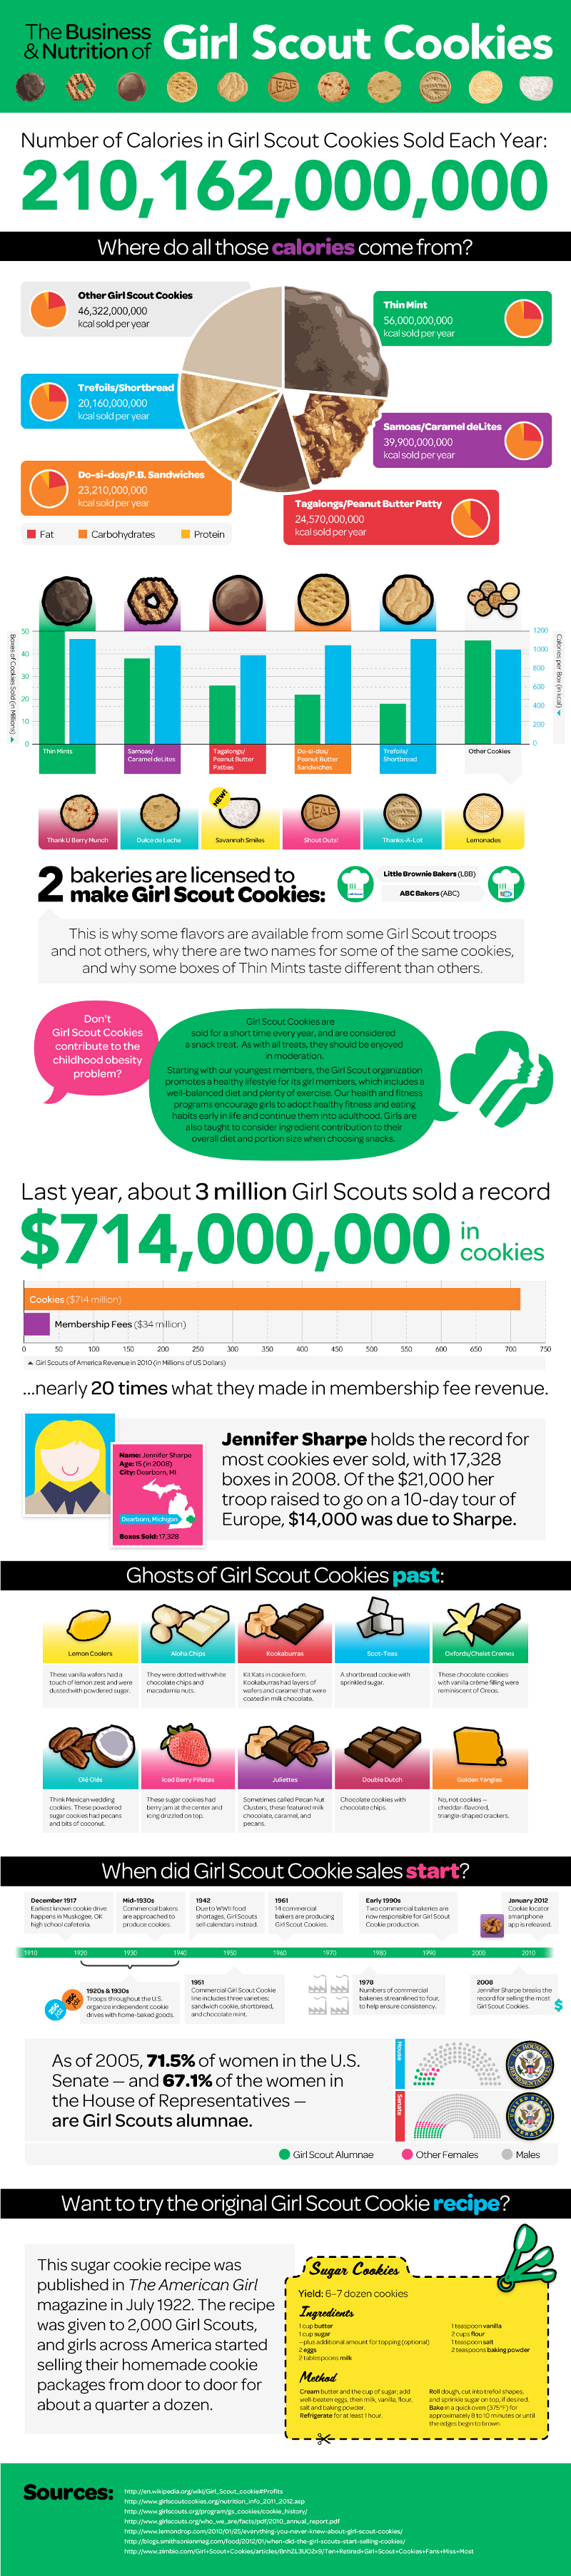 Facts About Girl Scout Cookie Industry